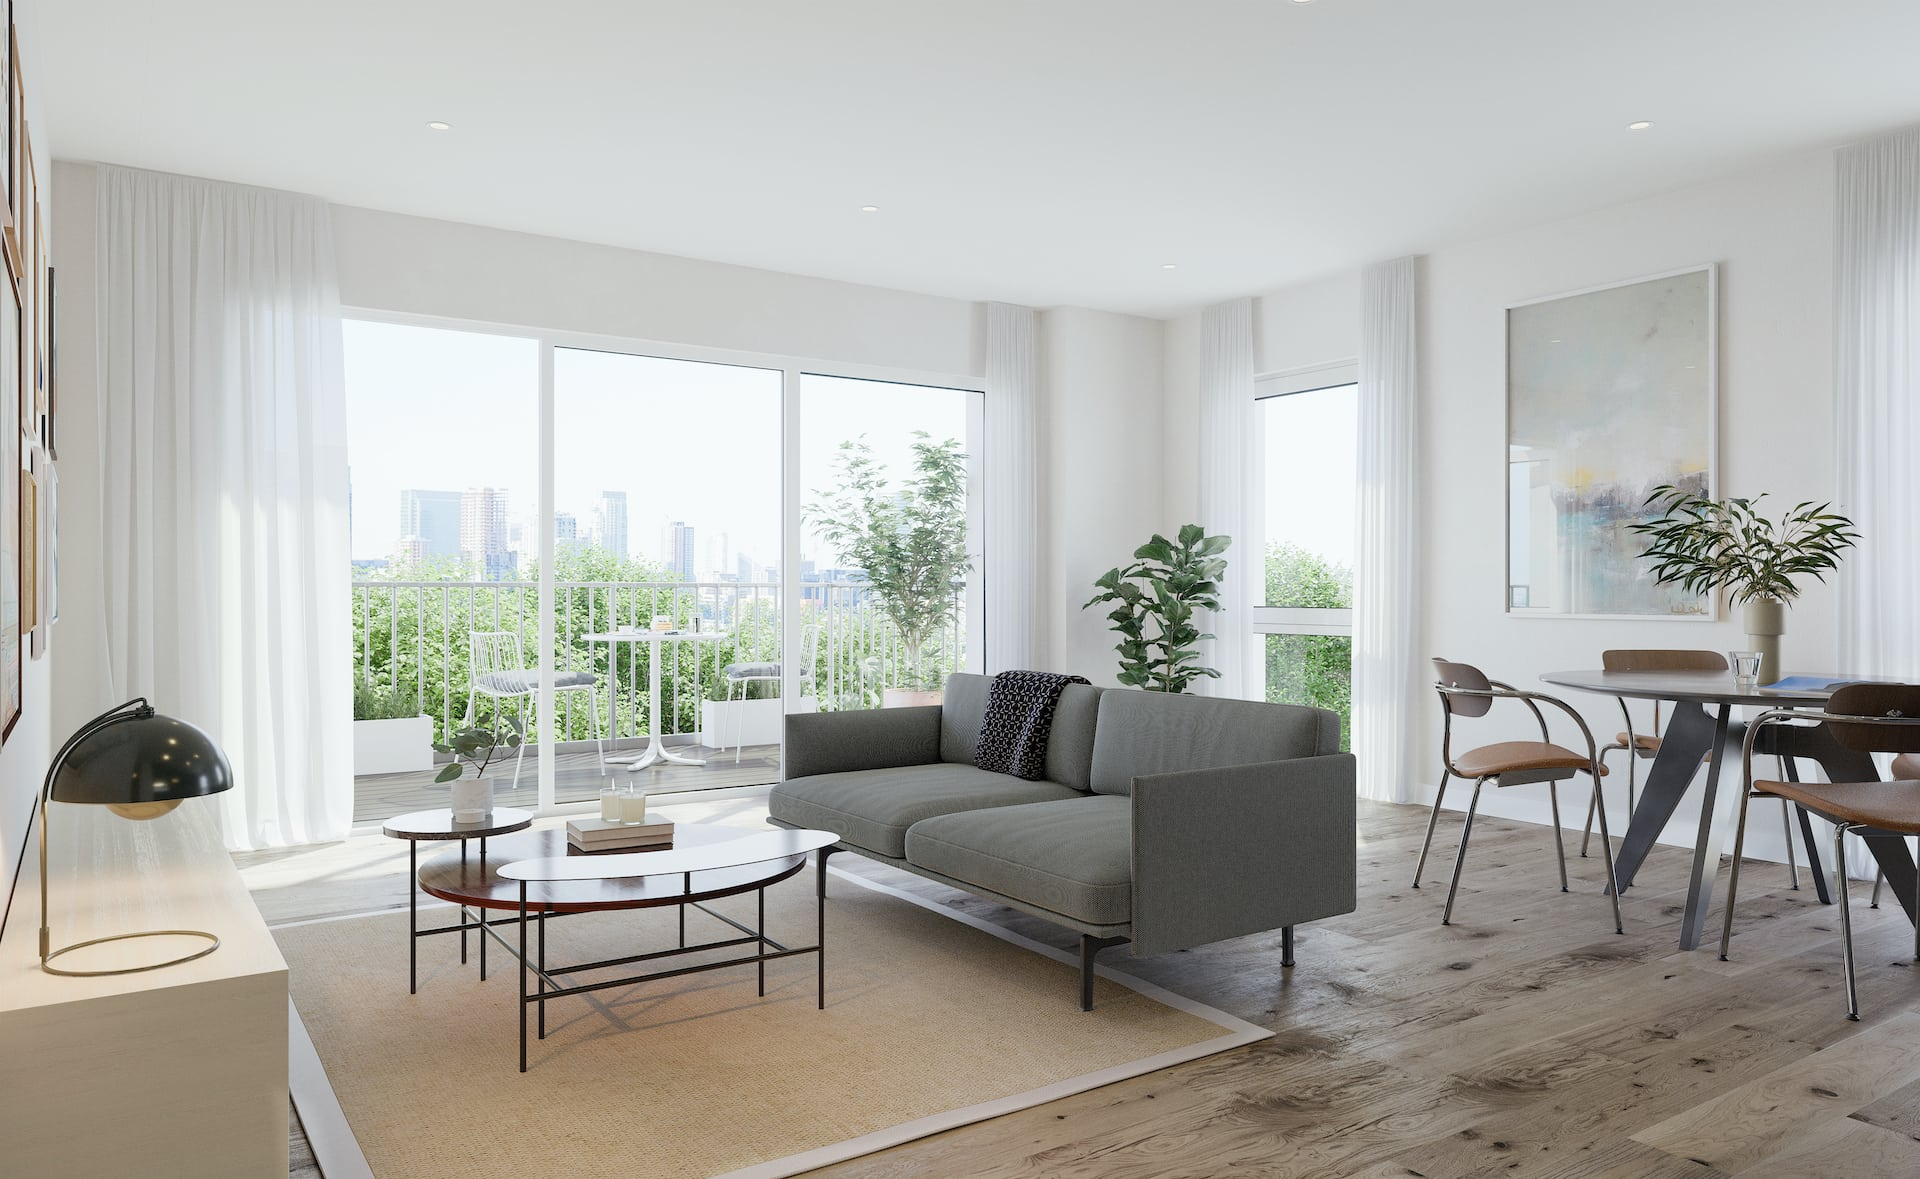 Internal show home photography of L&Q at The Timberyard - Shared Ownership homes available on Share to Buy